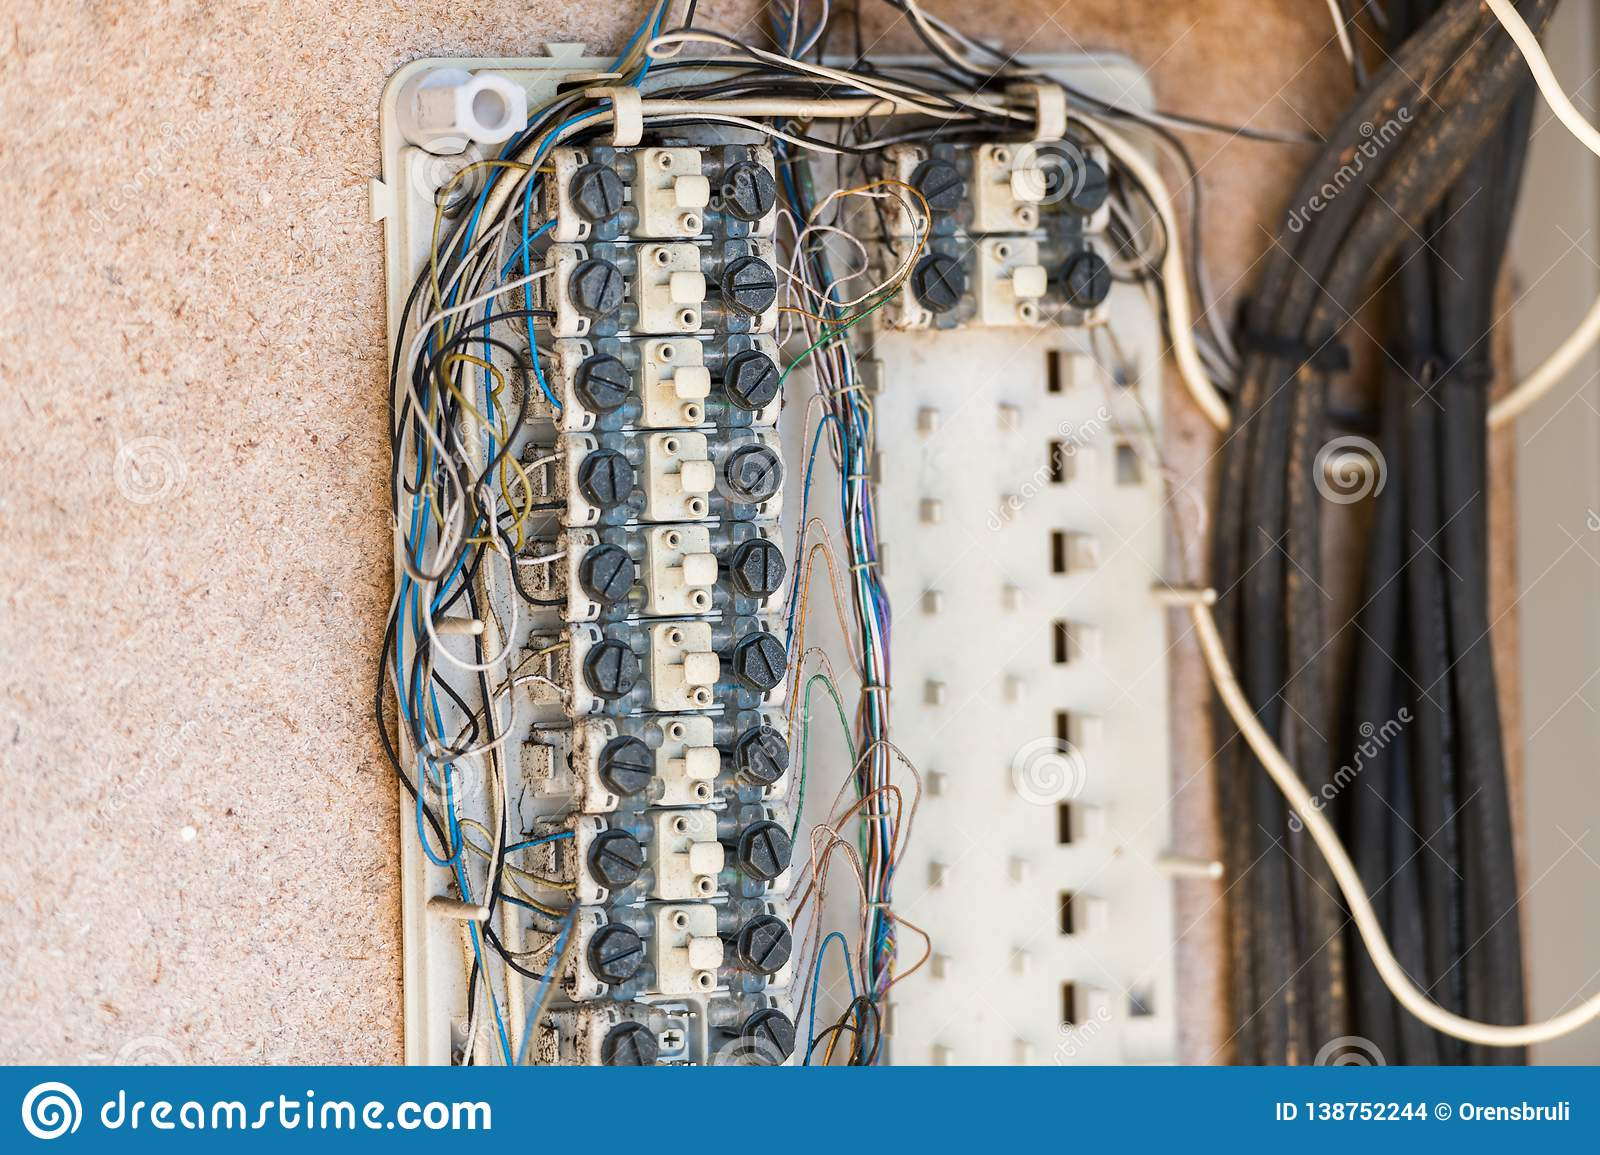 Wiring Of An Old Electrical Installation In Caceres ... on